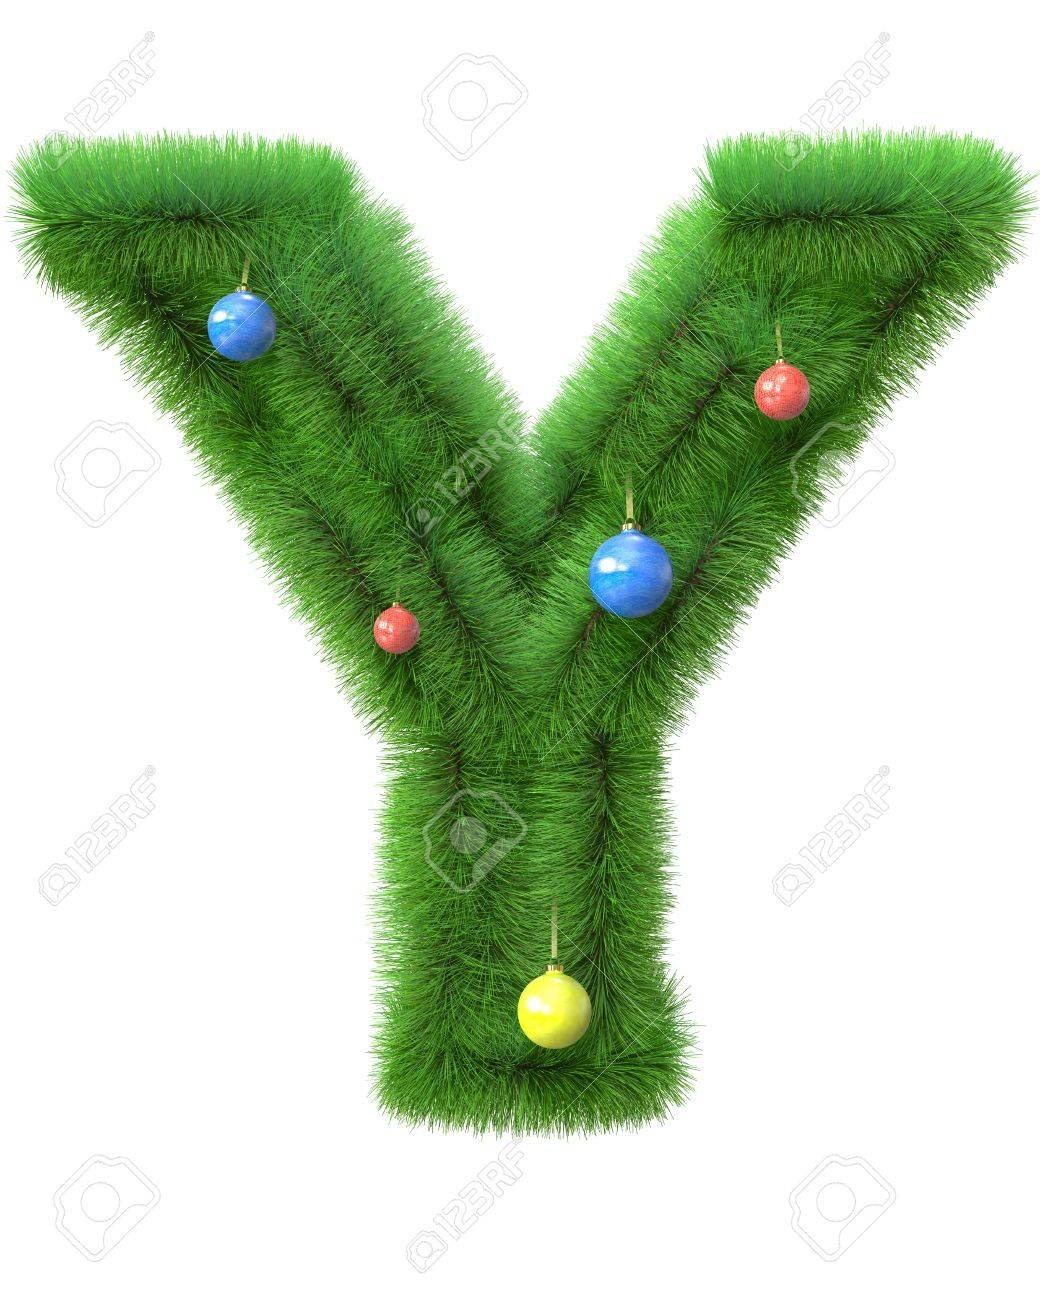 Merry Christmas Letter T.Y Letter Made Of Christmas Tree Branches Isolated On White Background